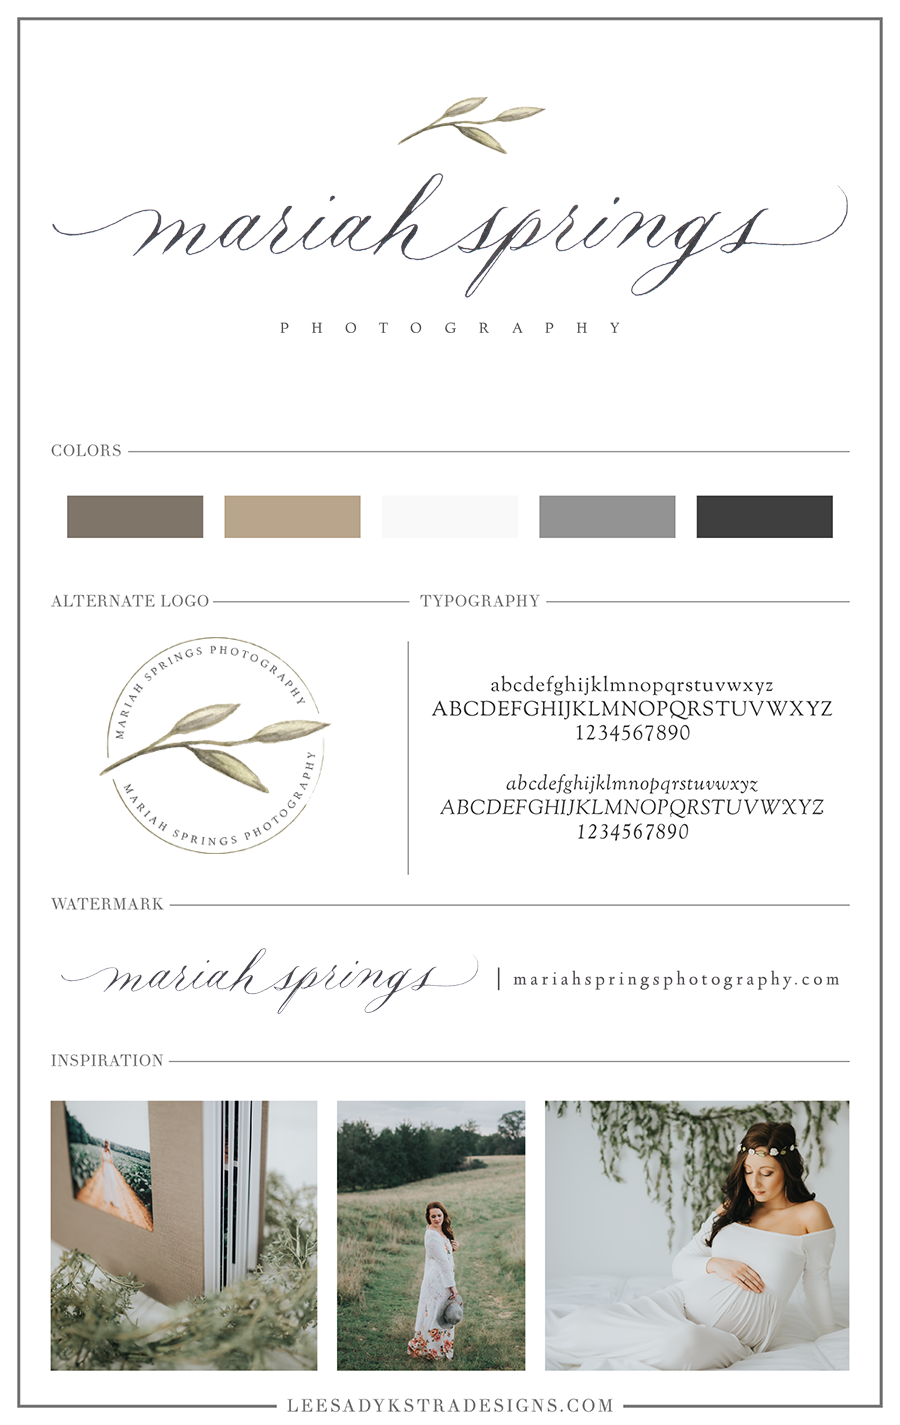 Brand Board for Mariah Springs Photography by Leesa Dykstra Designs